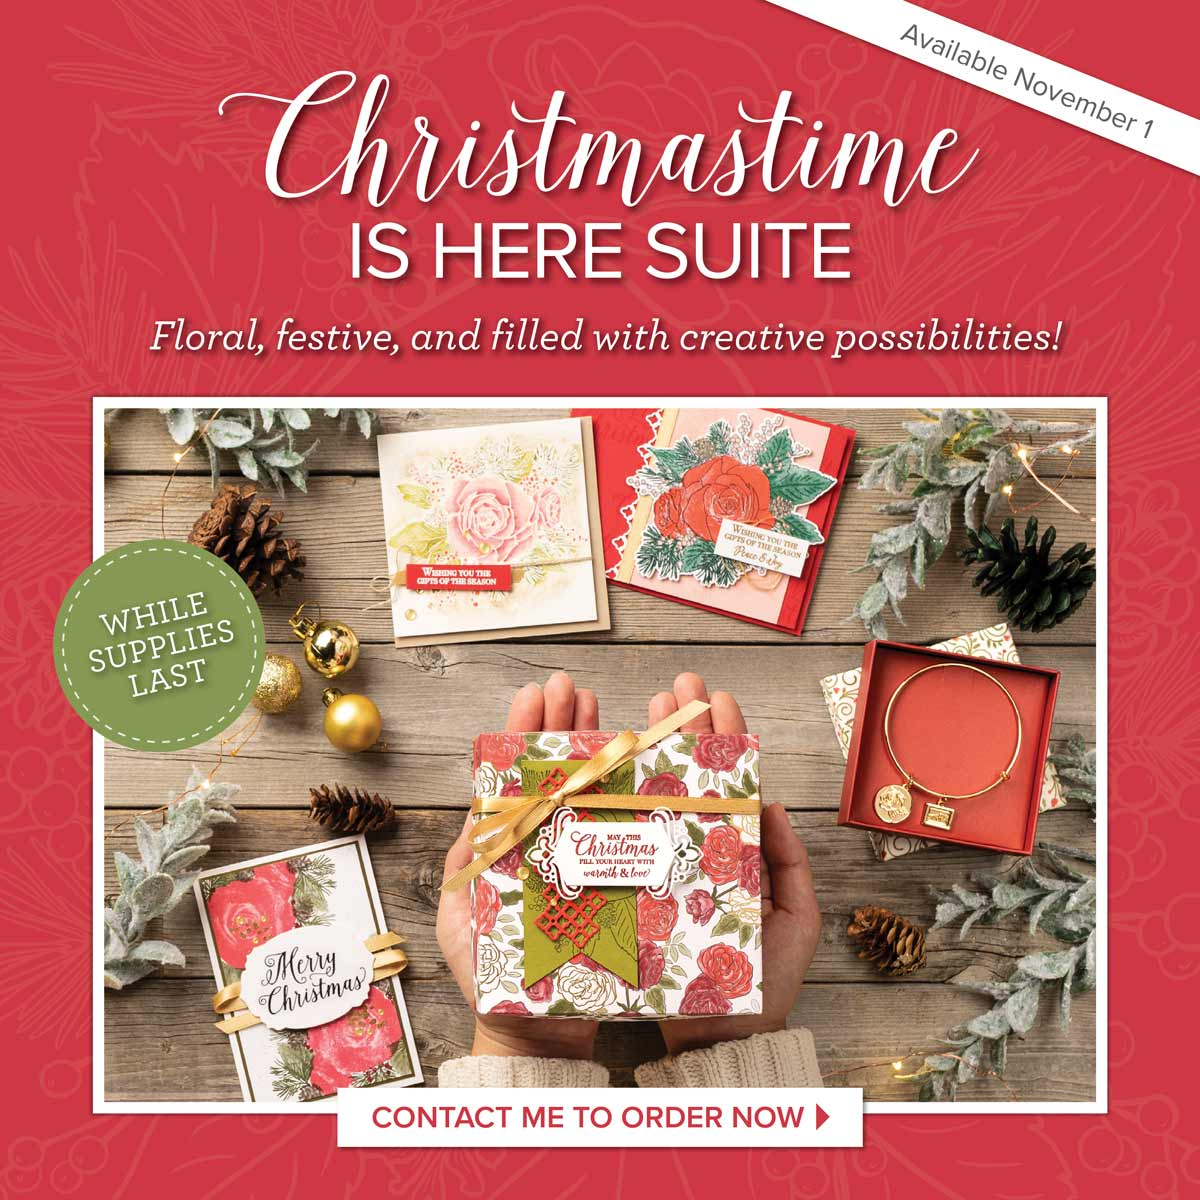 Christmastime Is Here Suite